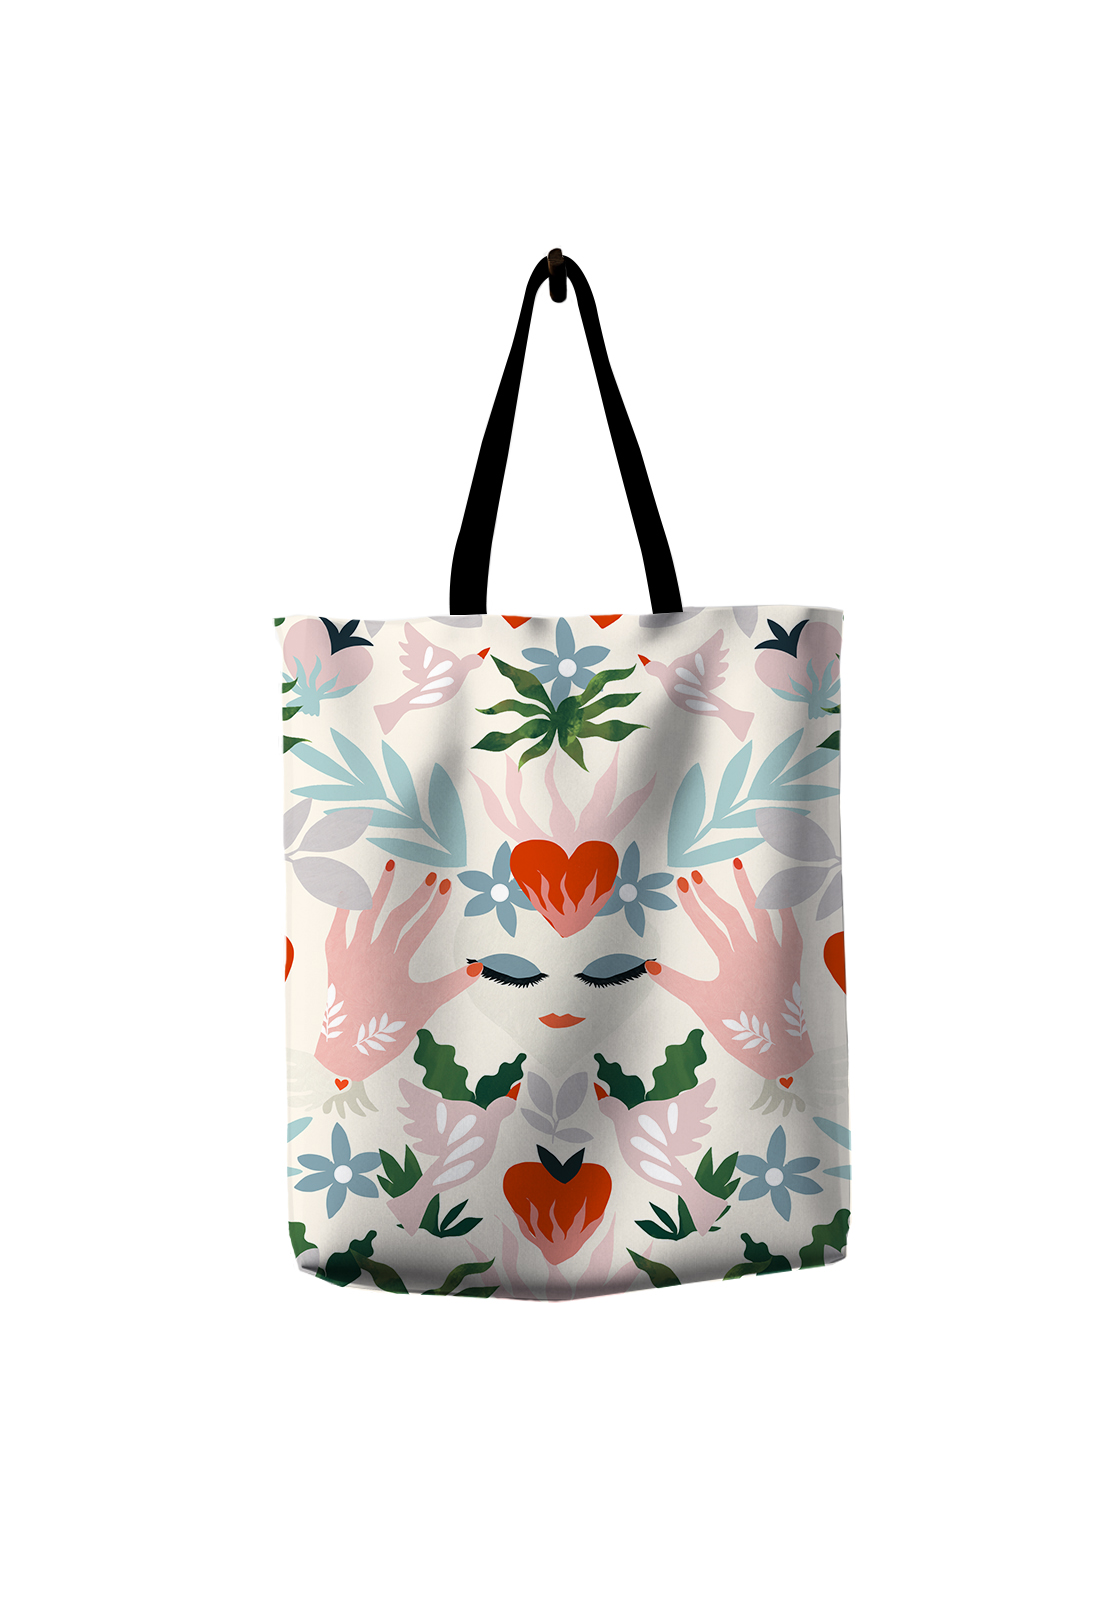 Tote Bag Pattern Heart